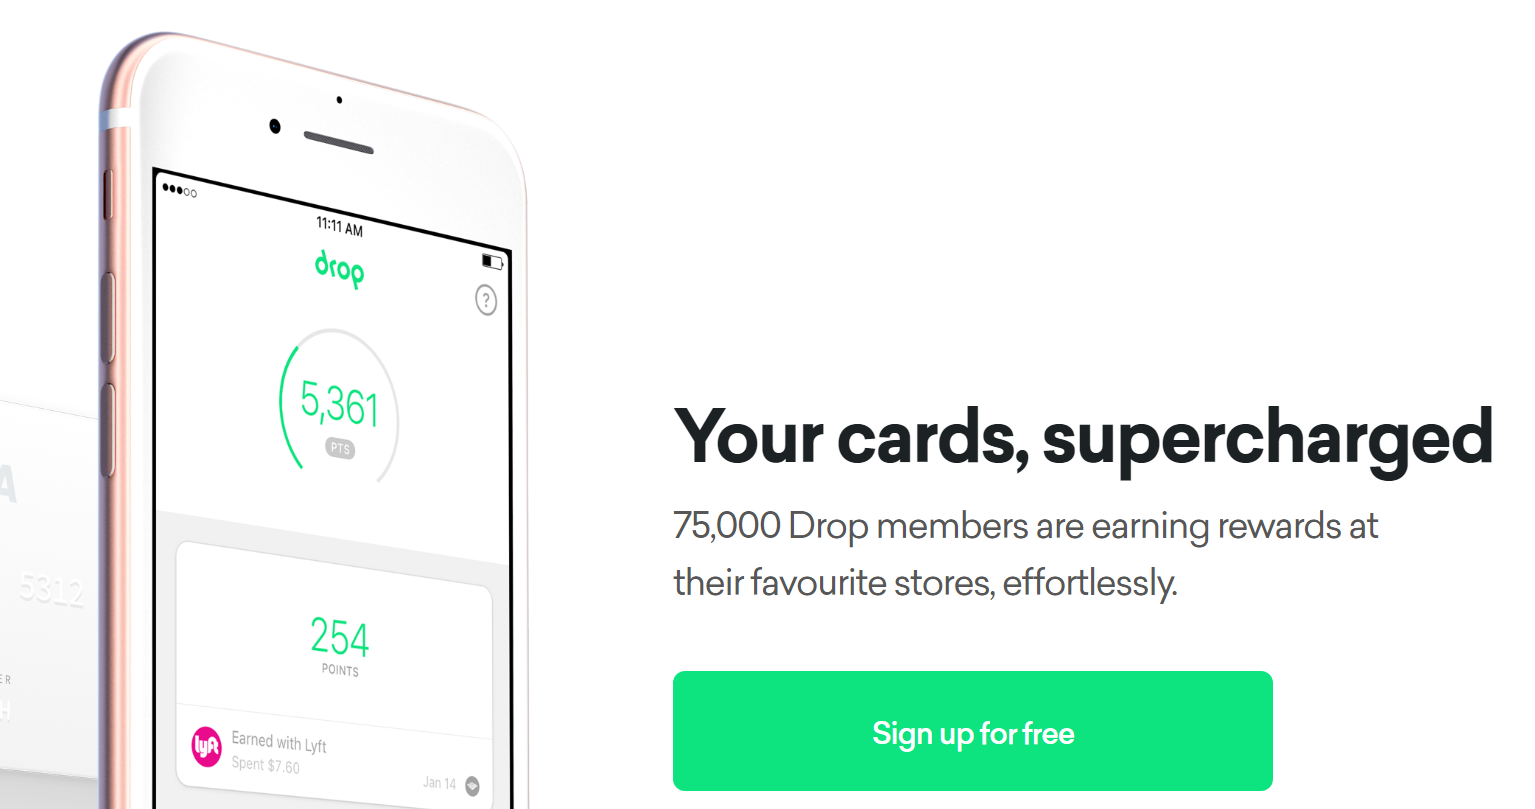 Drop】CIBC AC Conversion Card: Get 20,000 Points for Your